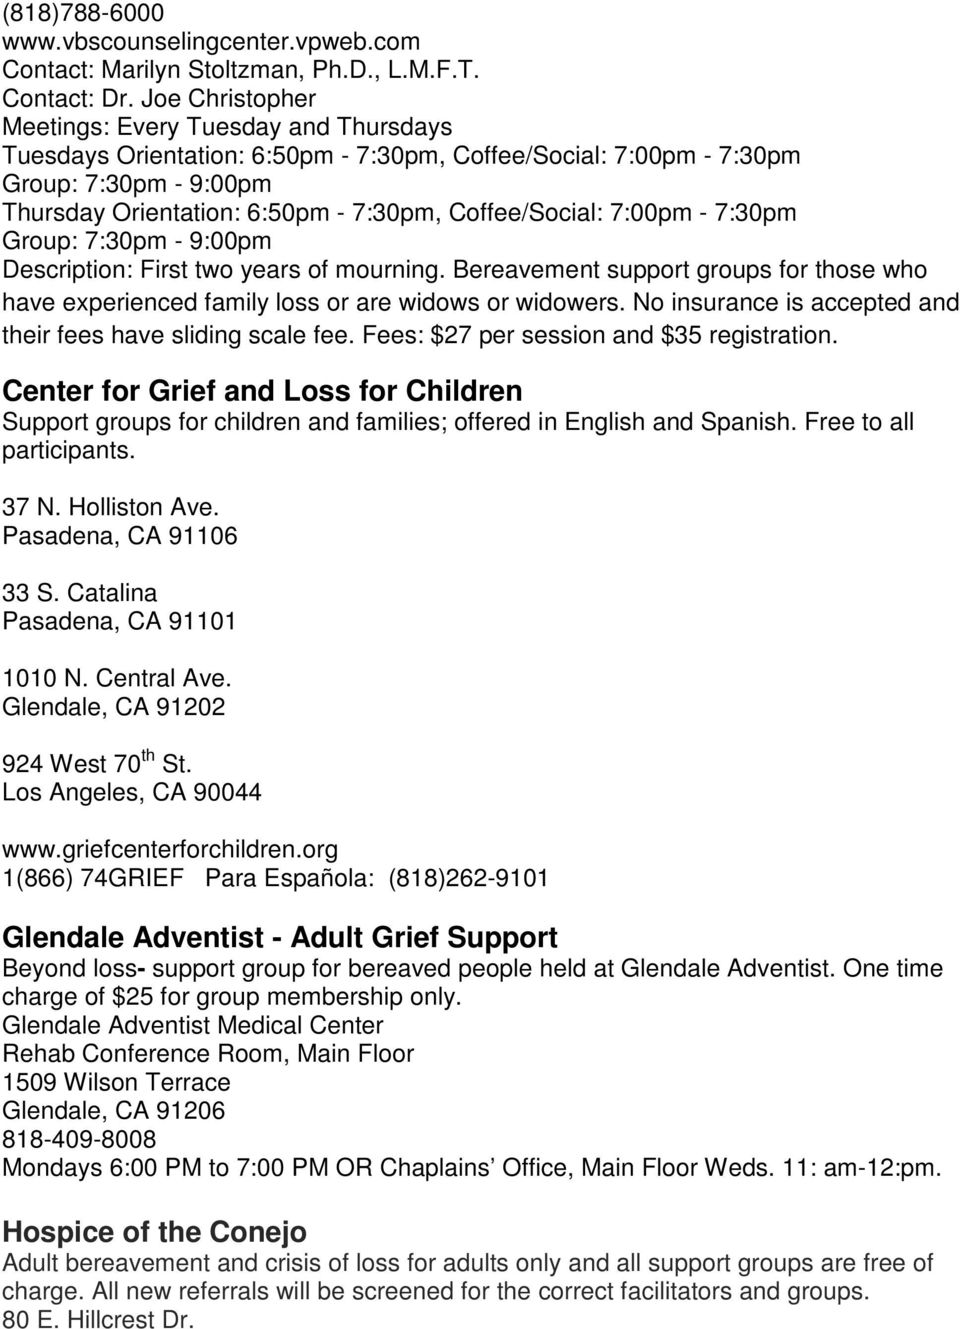 Bereavement resources in los angeles county pdf for 1509 wilson terrace glendale ca